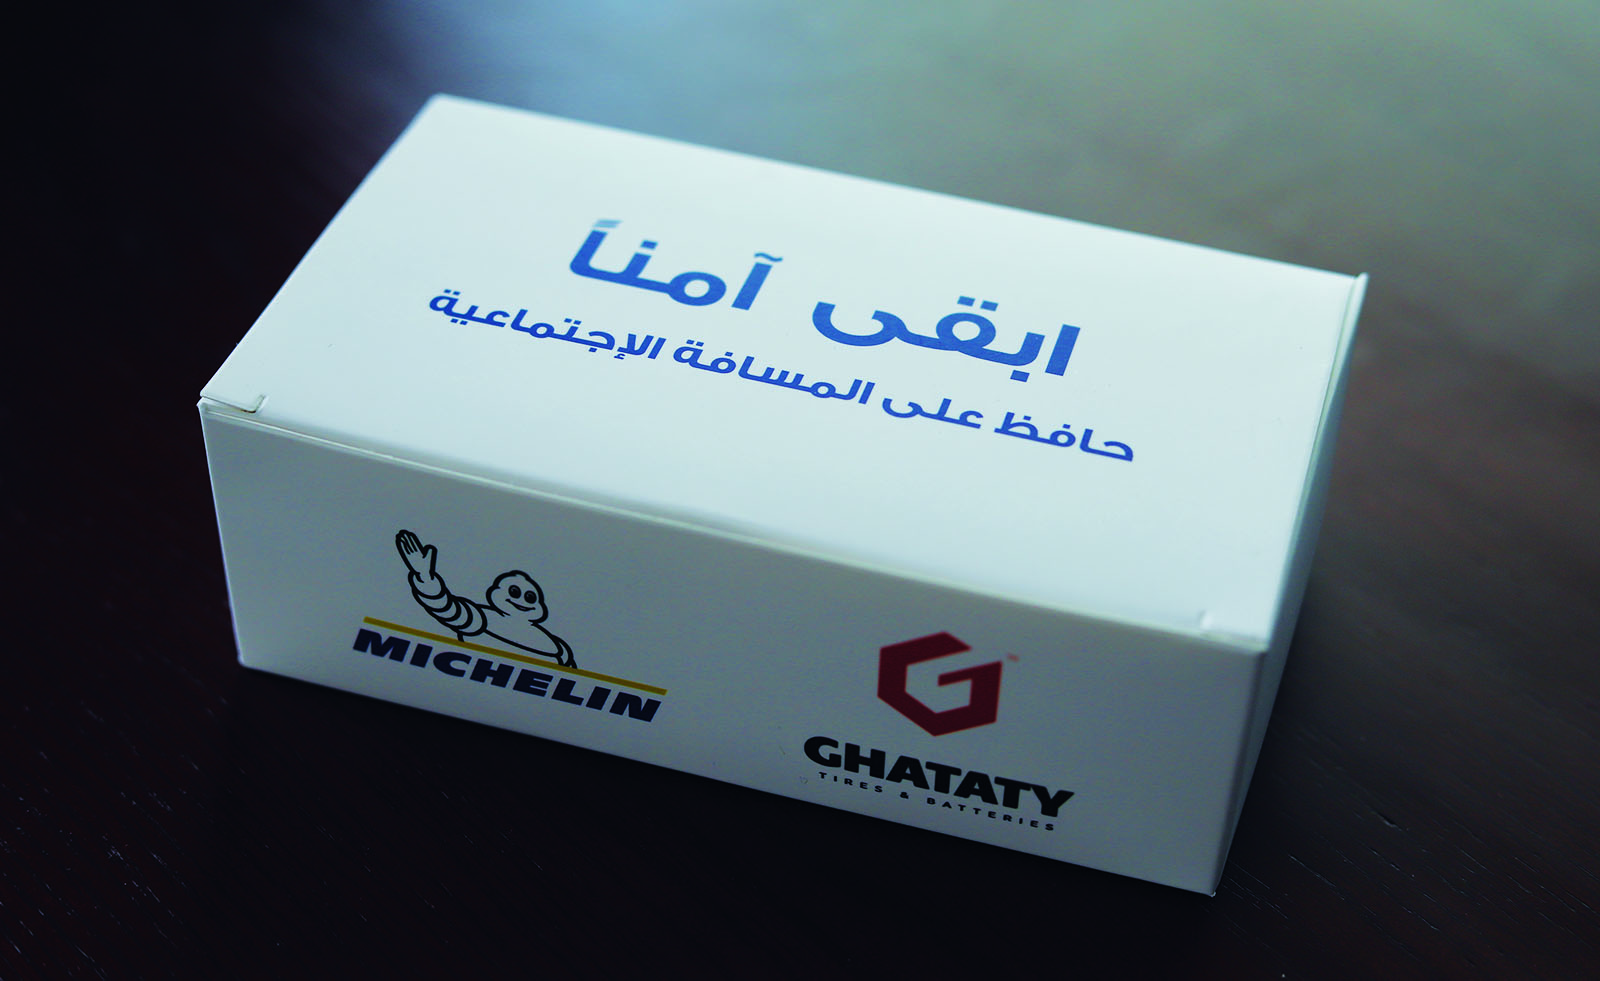 Ghataty and Michelin Launch a Campaign to Raise Awareness Against COVID-19 in Egypt